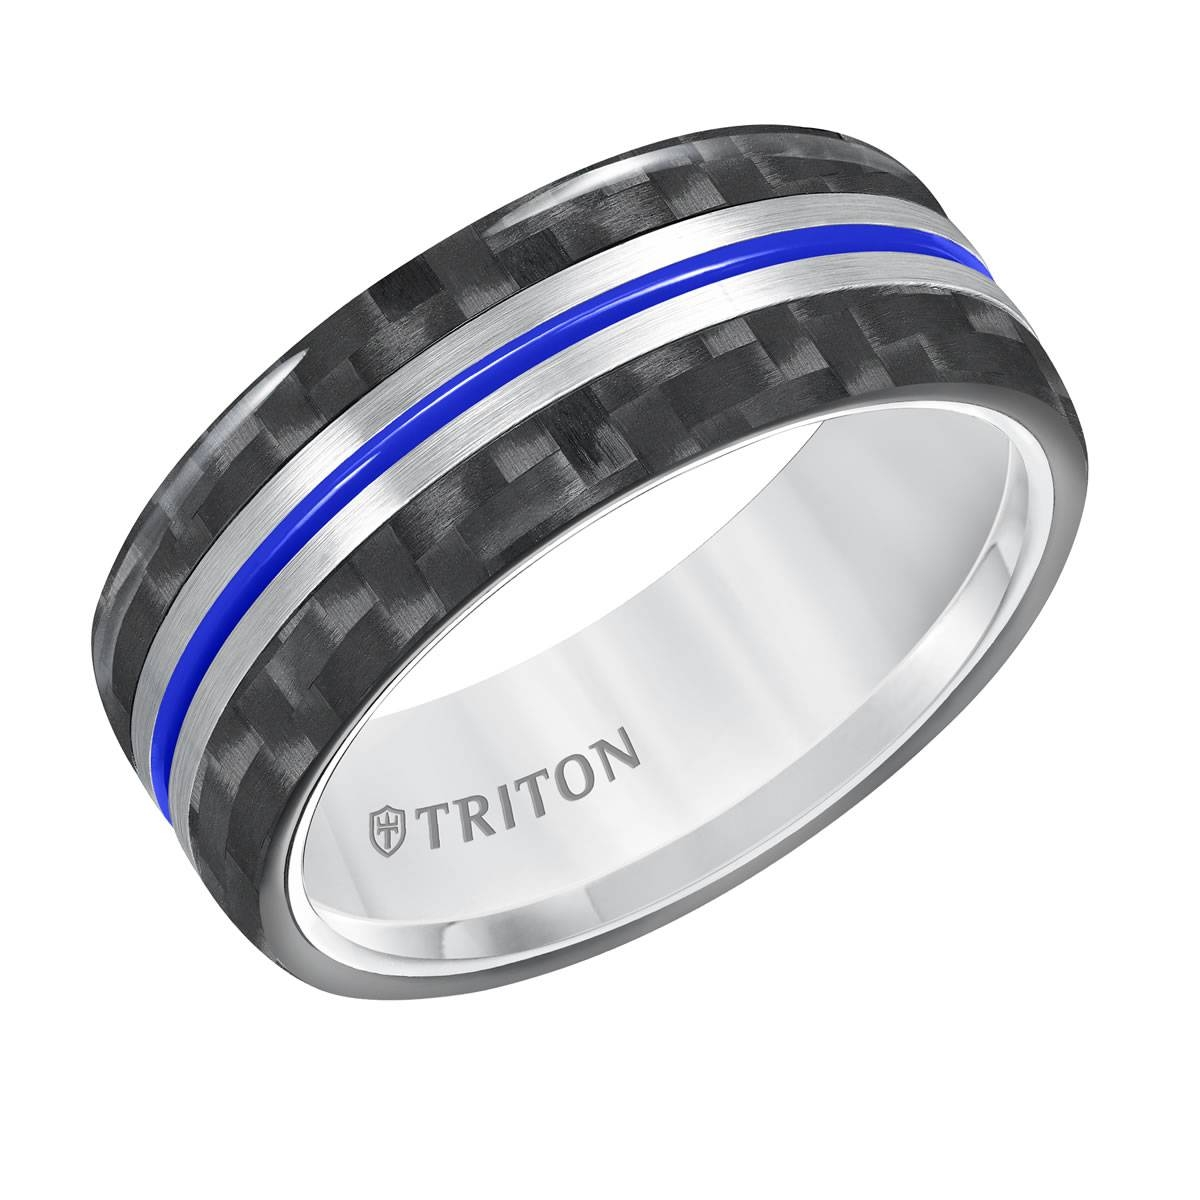 Triton 8Mm White Tungstenair Comfort Fit Men's Wedding Band With Throughout Carbon Wedding Bands (View 14 of 15)